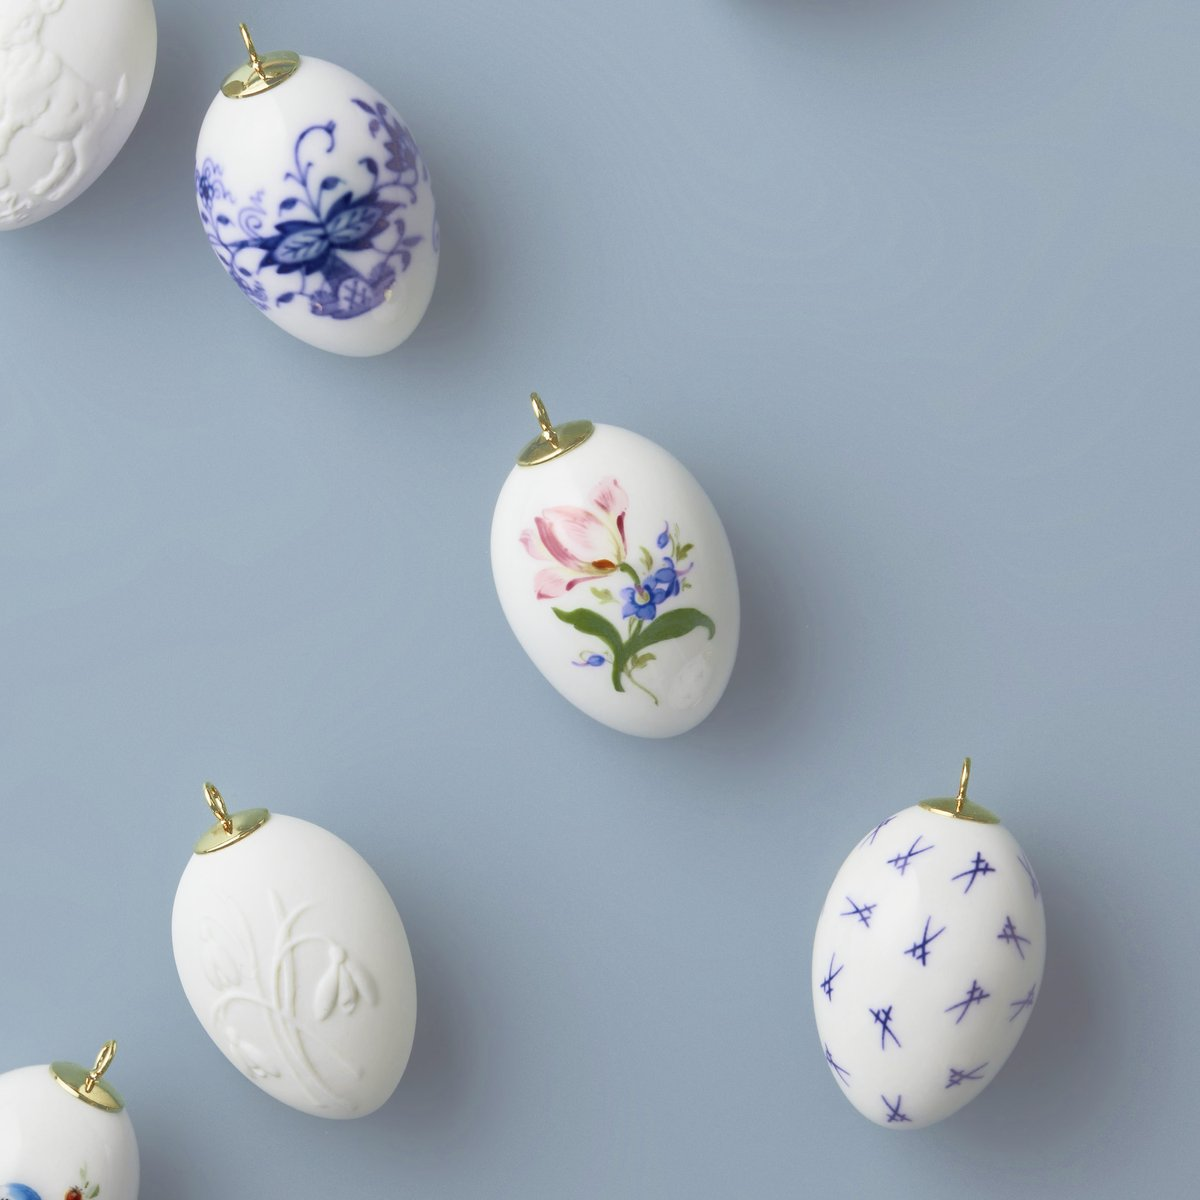 Easter is just around the corner - is your Easter decoration ready? Shop our precious porcelain Easter eggs now: https://bit.ly/2JDzBoN  #meissenporcelain #porcelain #Easter2020 #EasterEgg #easterdecorpic.twitter.com/0VUDuOTueE